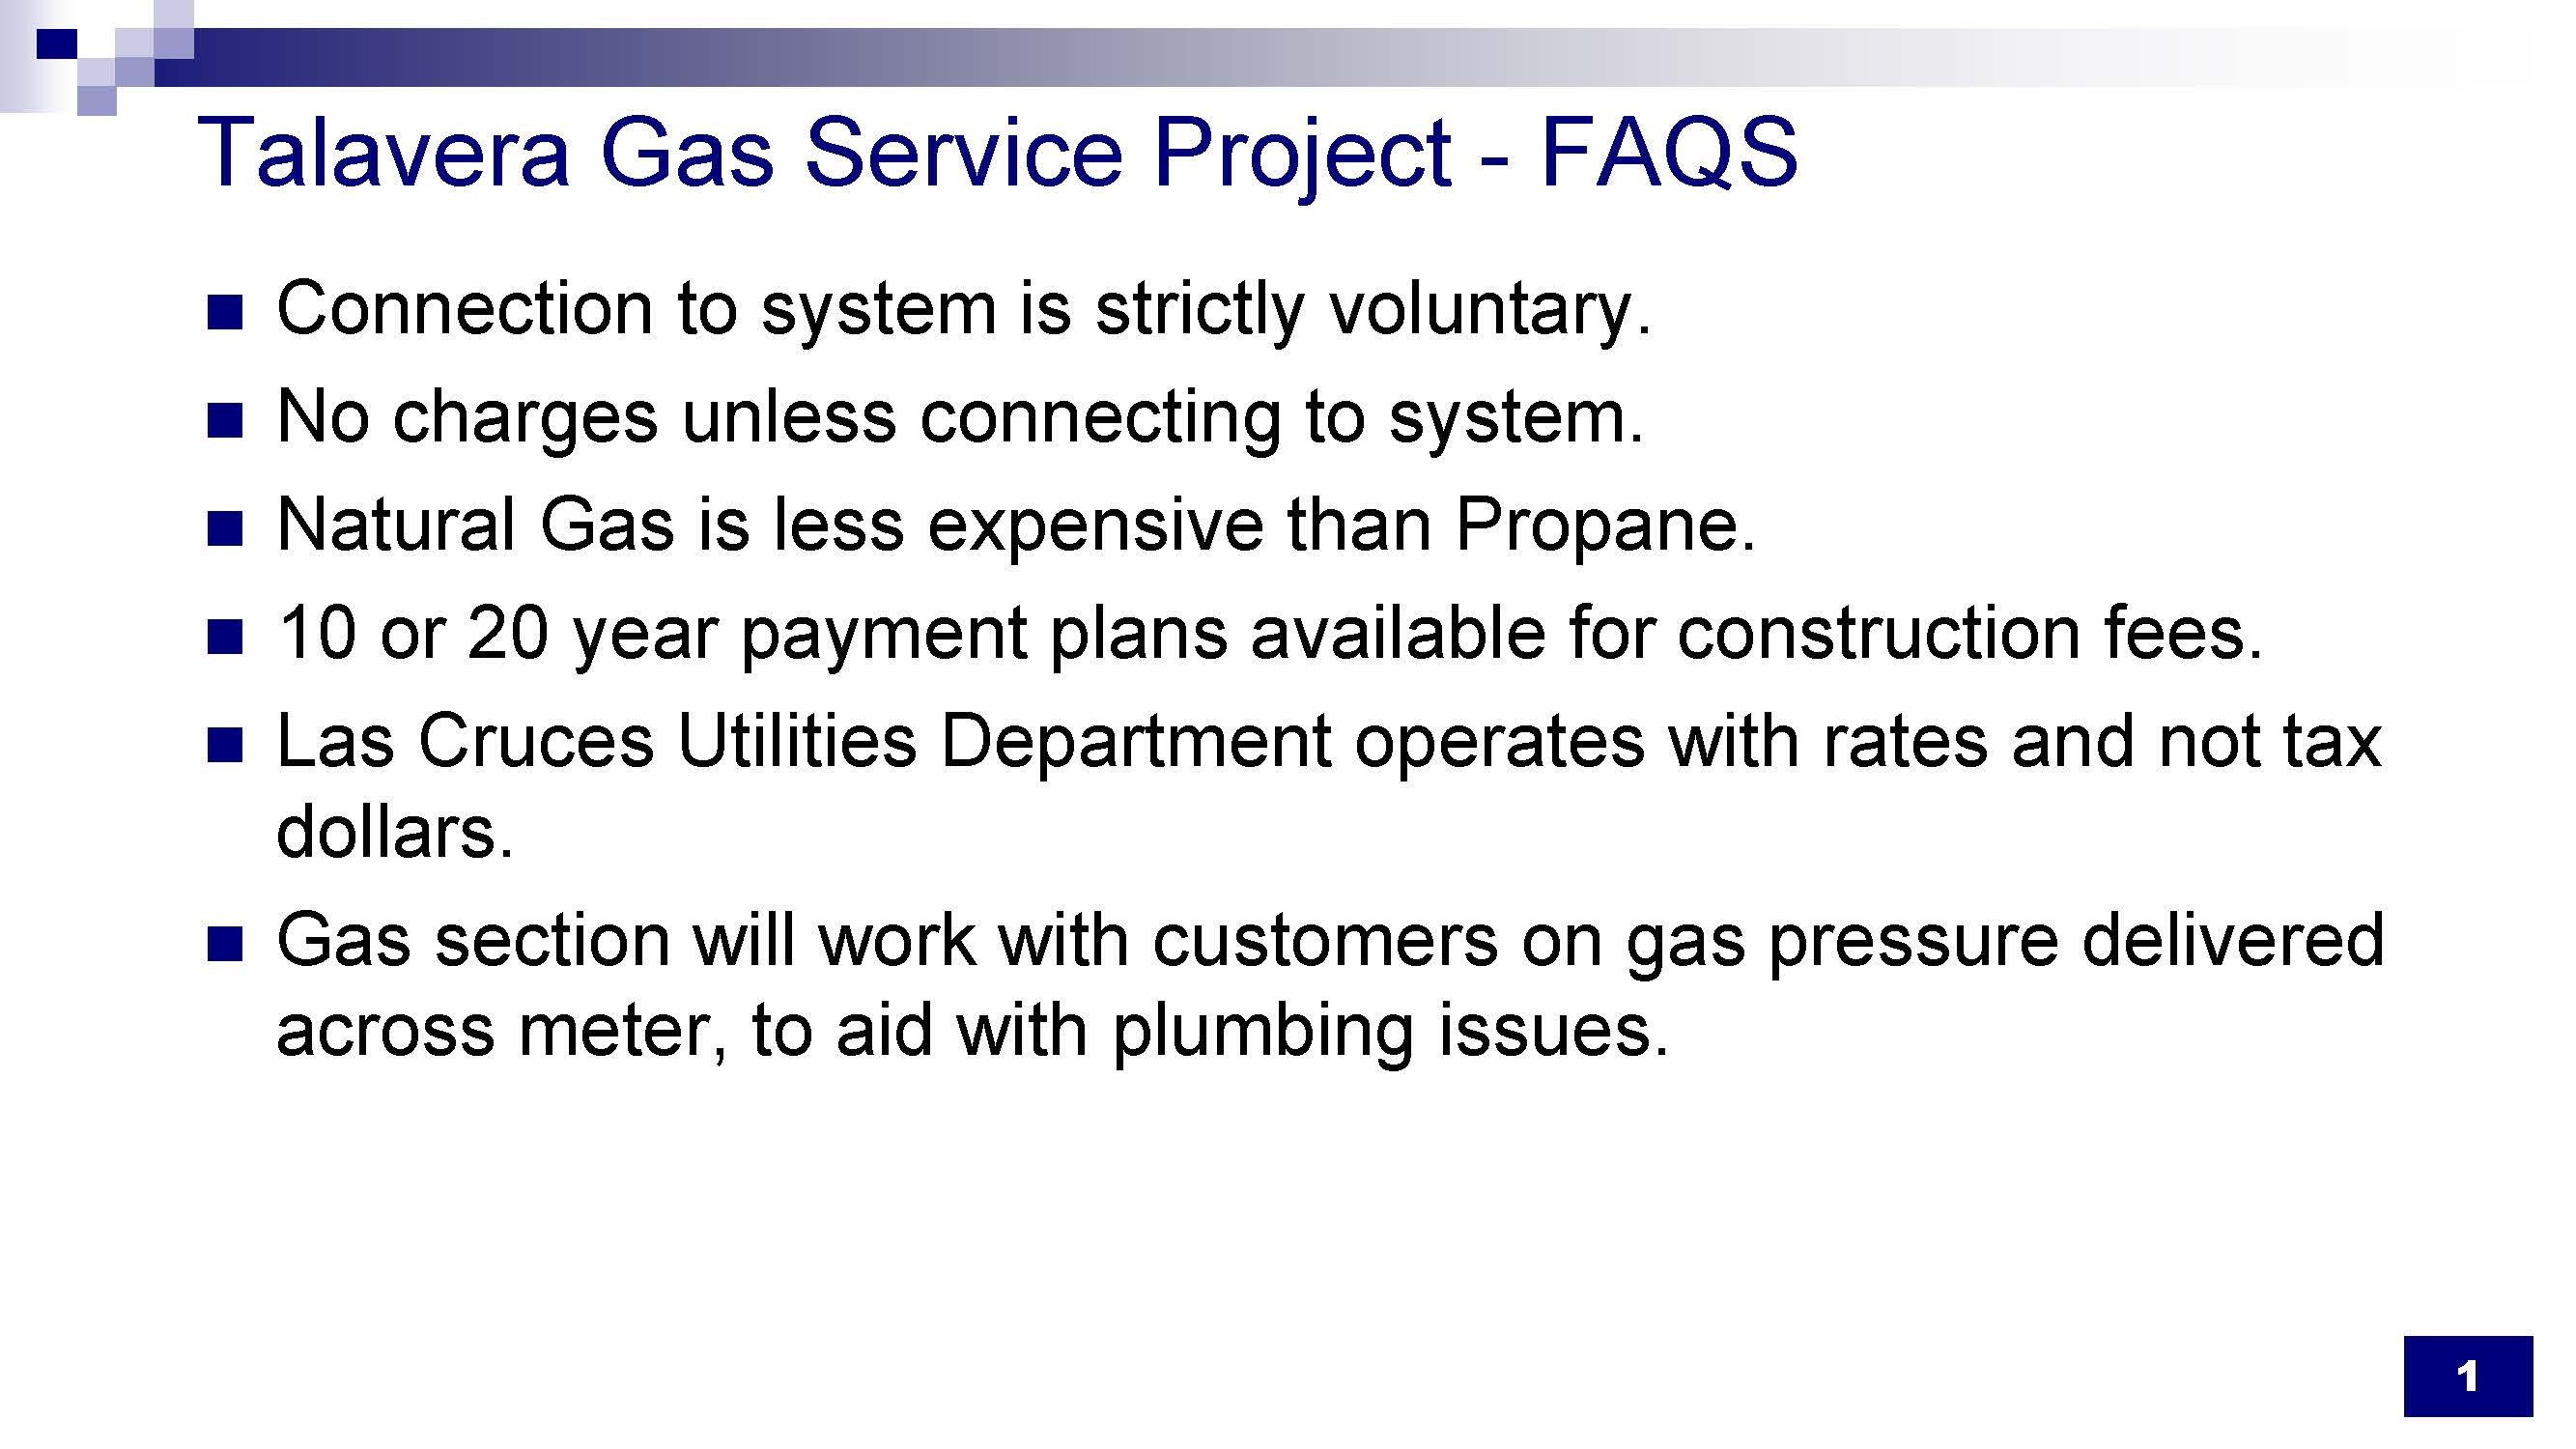 Frequently Asked Questions about the Talavera Natural Gas Expansion